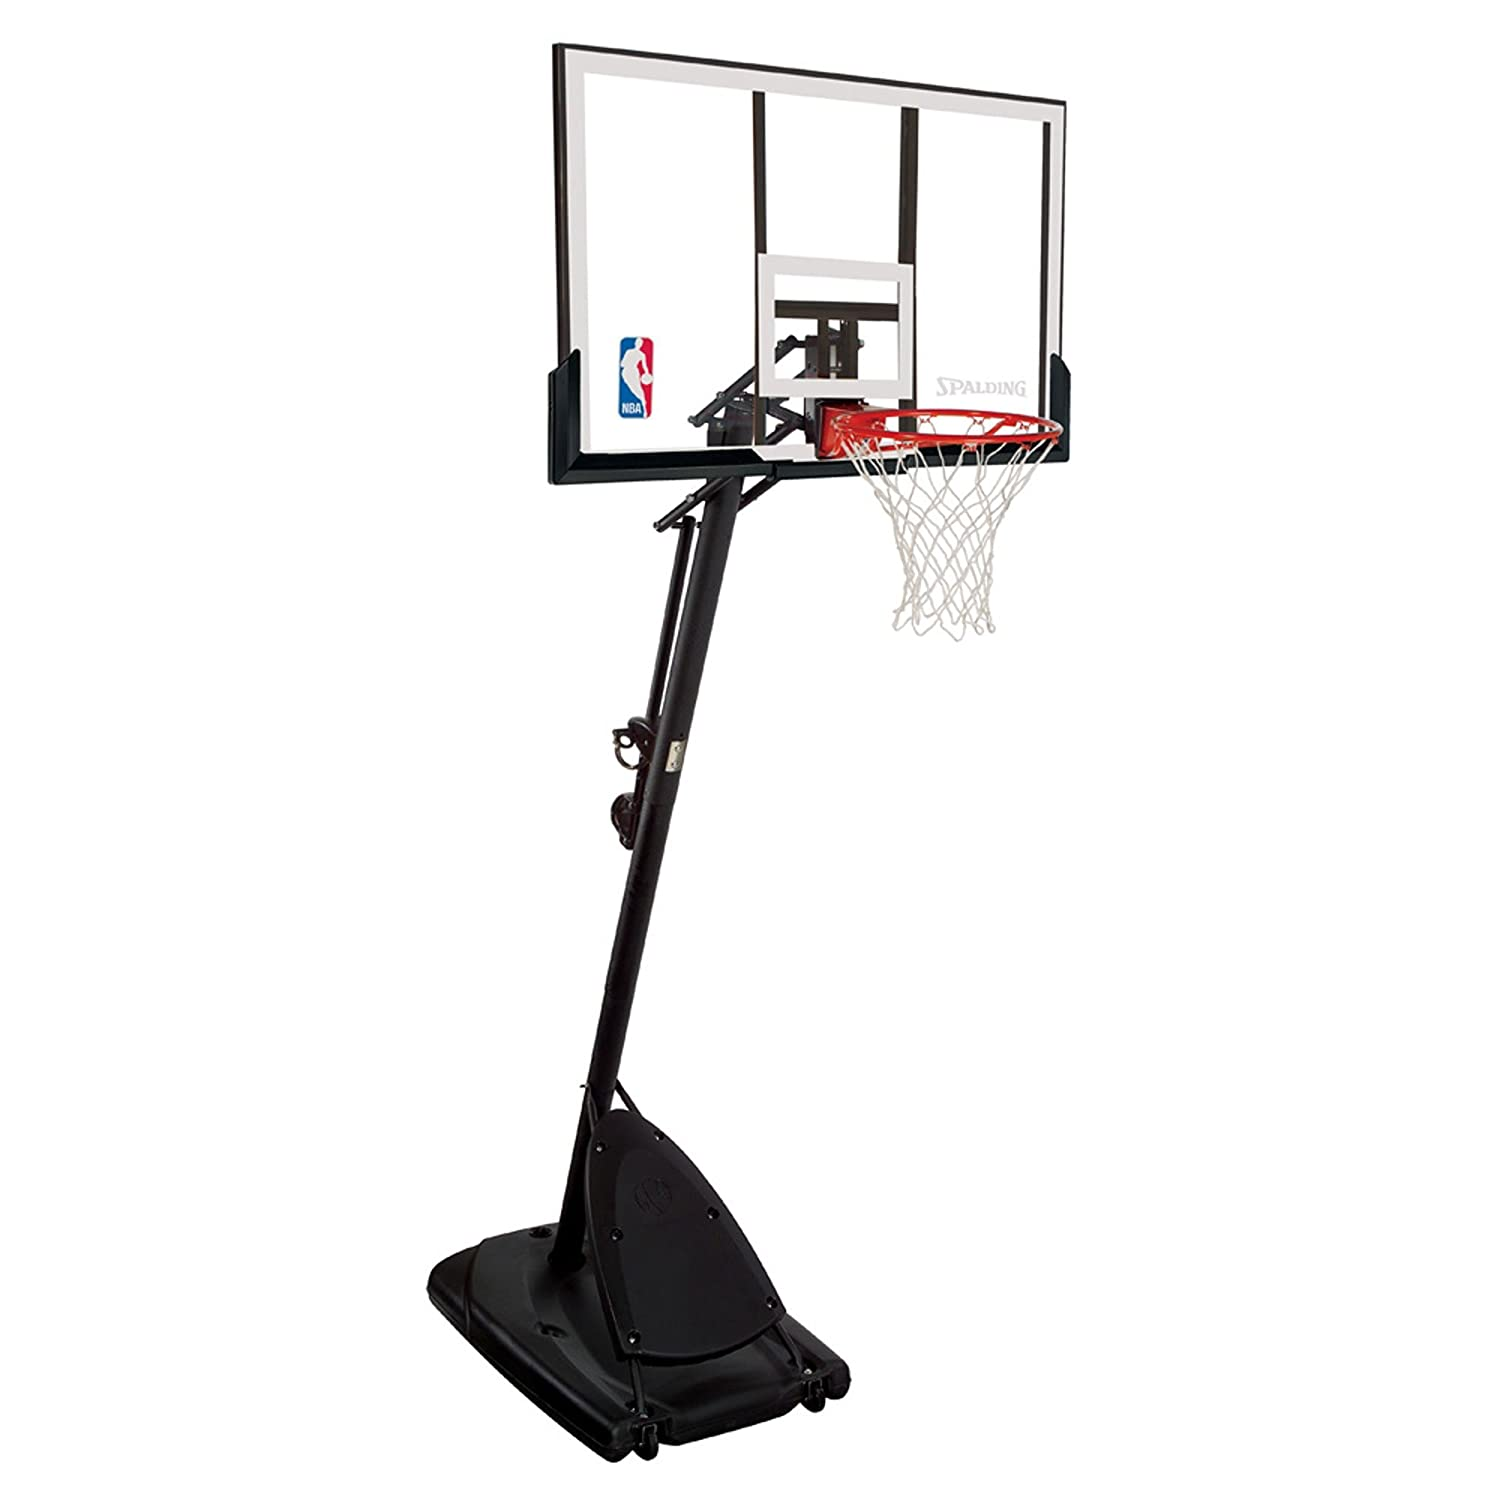 Amazon.com : Spalding 66291 Pro Slam Portable Basketball System with ...